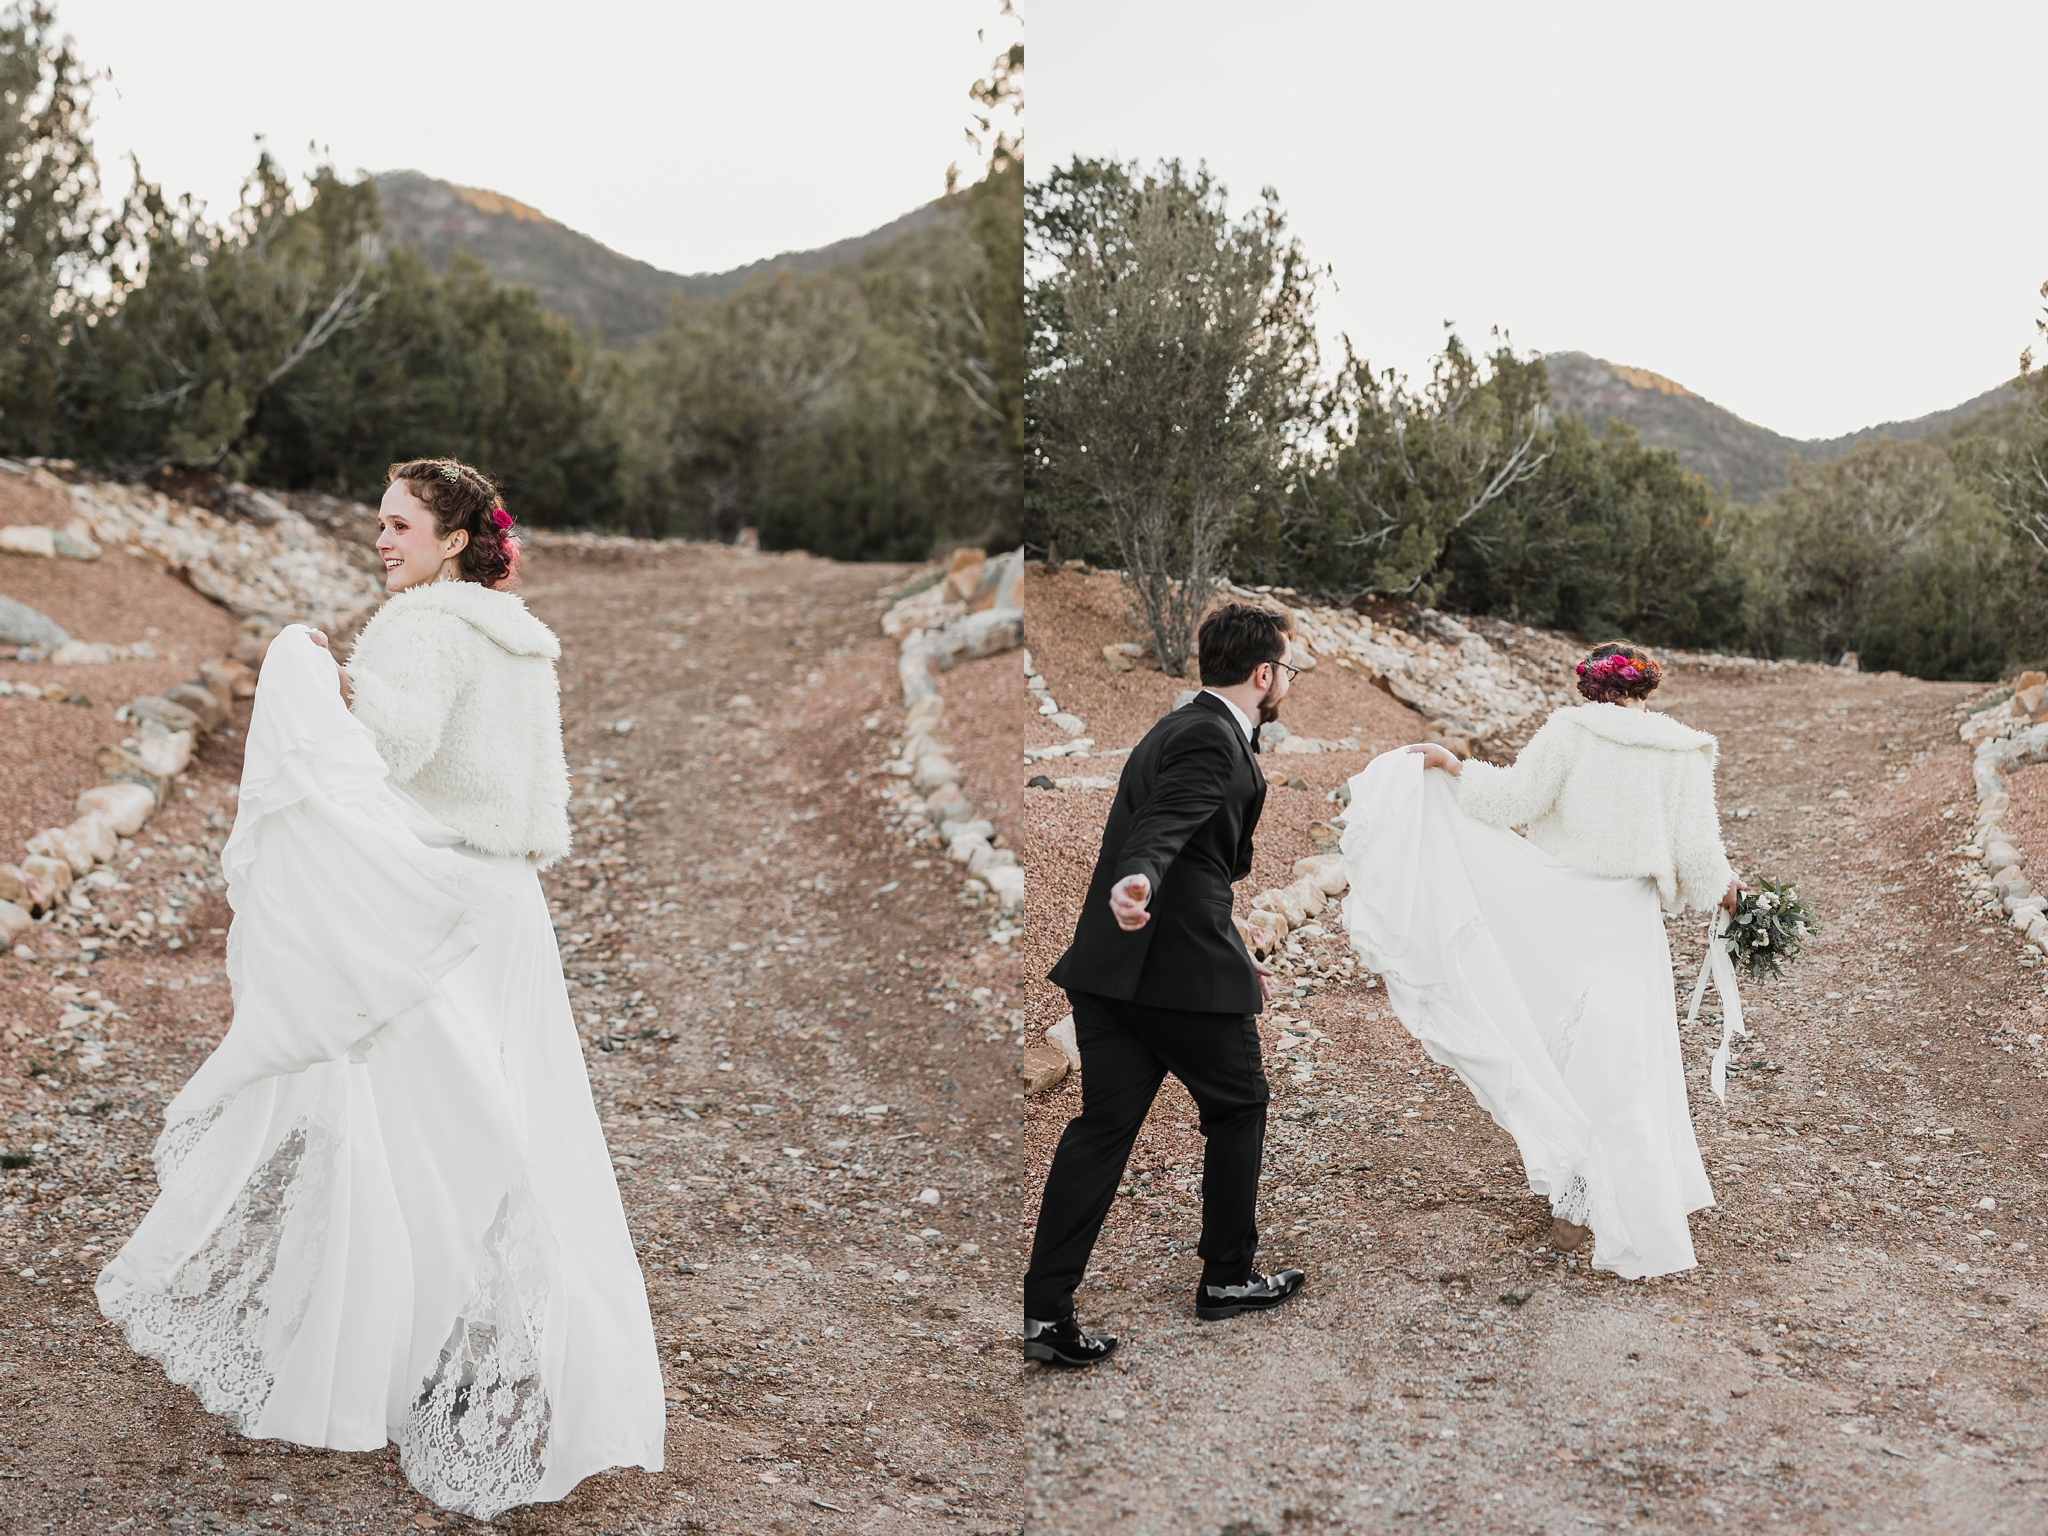 Alicia+lucia+photography+-+albuquerque+wedding+photographer+-+santa+fe+wedding+photography+-+new+mexico+wedding+photographer+-+new+mexico+wedding+-+engagement+-+santa+fe+wedding+-+hacienda+dona+andrea+-+hacienda+dona+andrea+wedding_0075.jpg